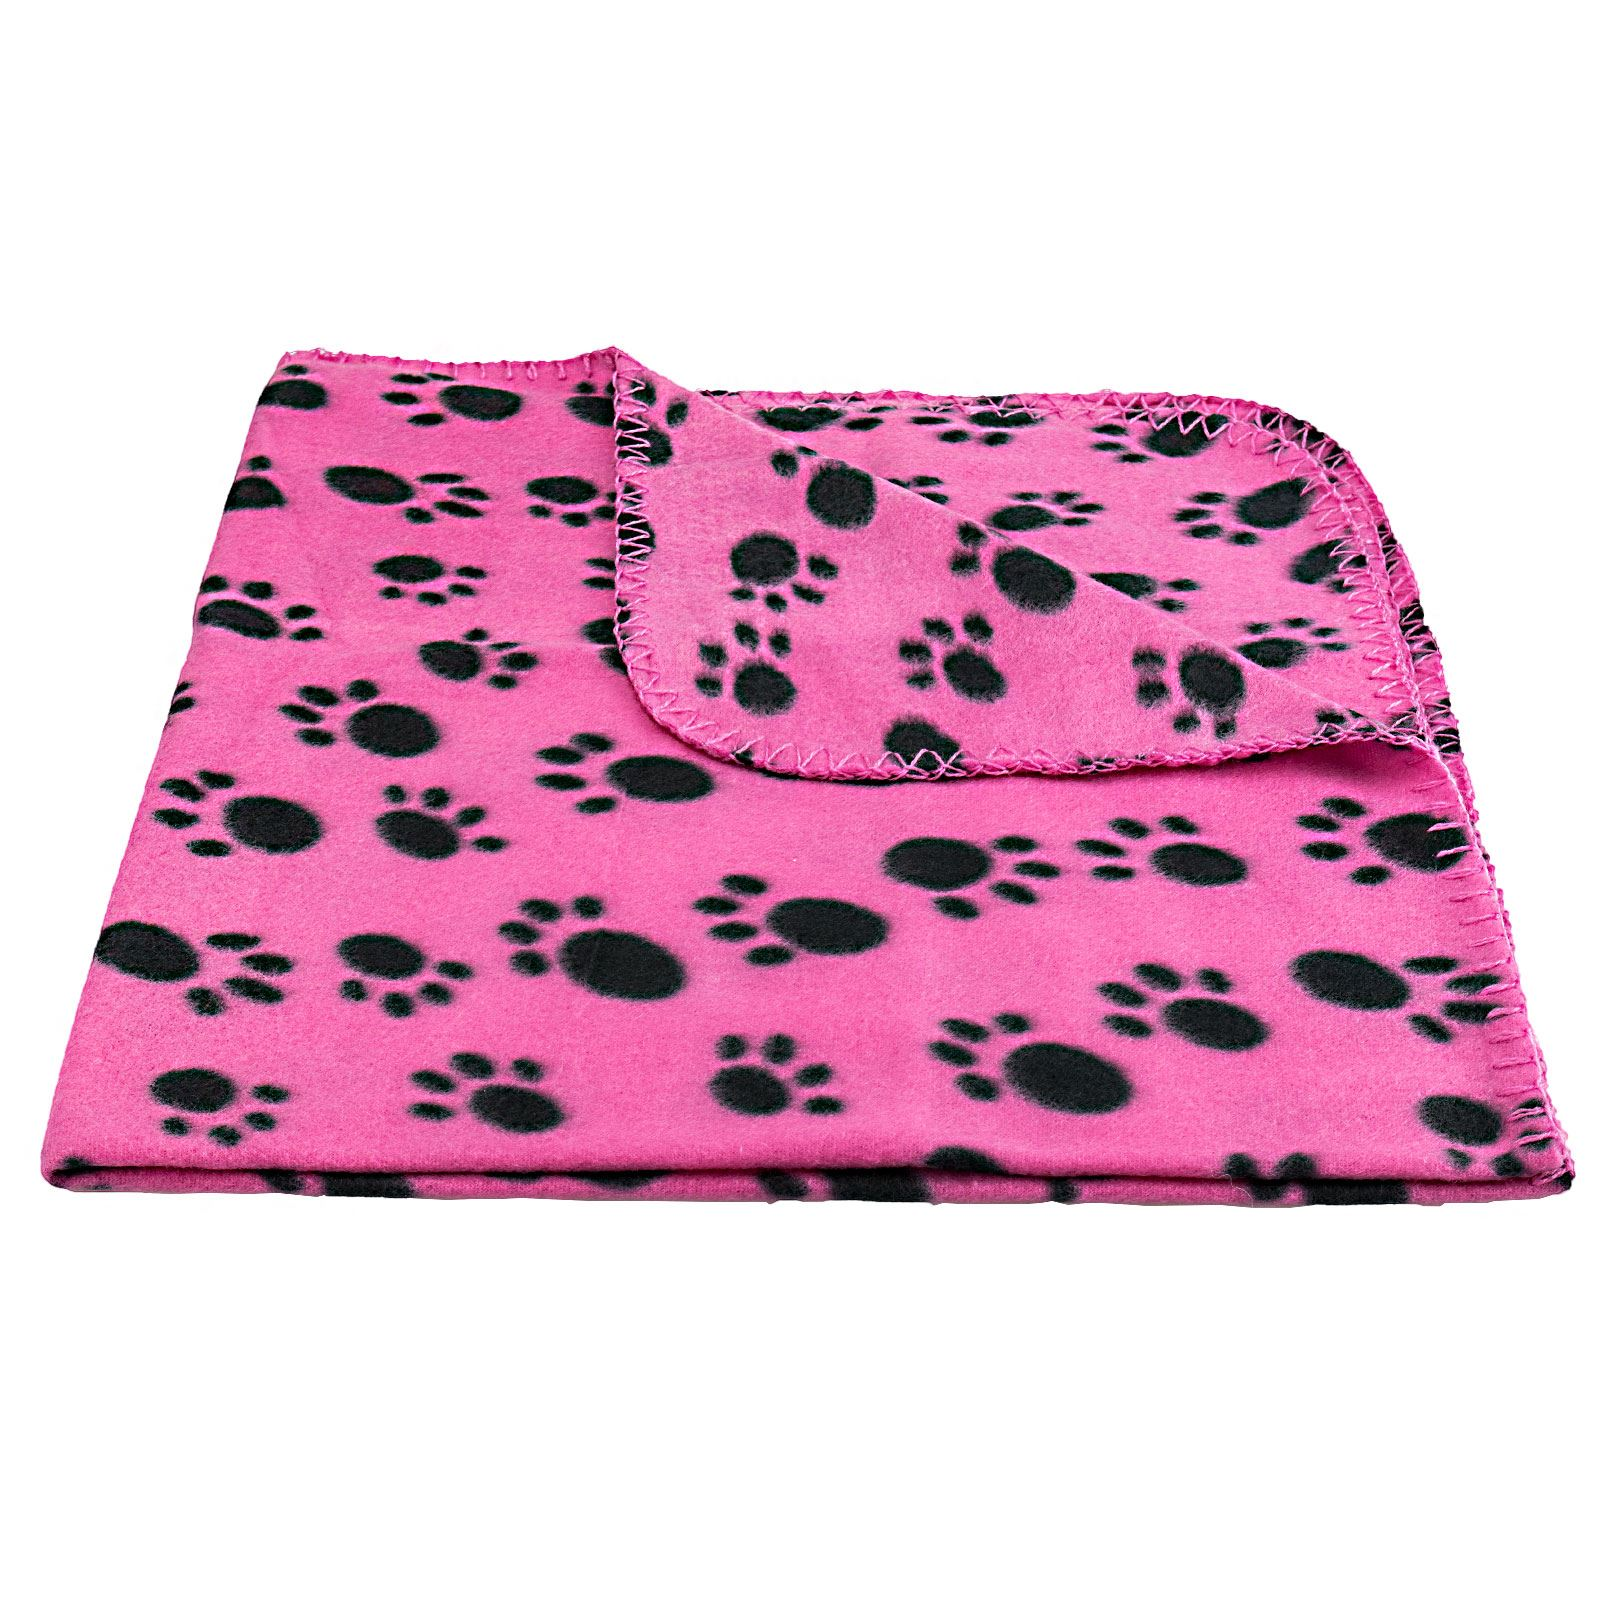 Pet-Blanket-Dogs-amp-Puppy-Cat-Paw-Print-Soft-Warm-Fleece-Bed-Travel-Basket-Car thumbnail 25